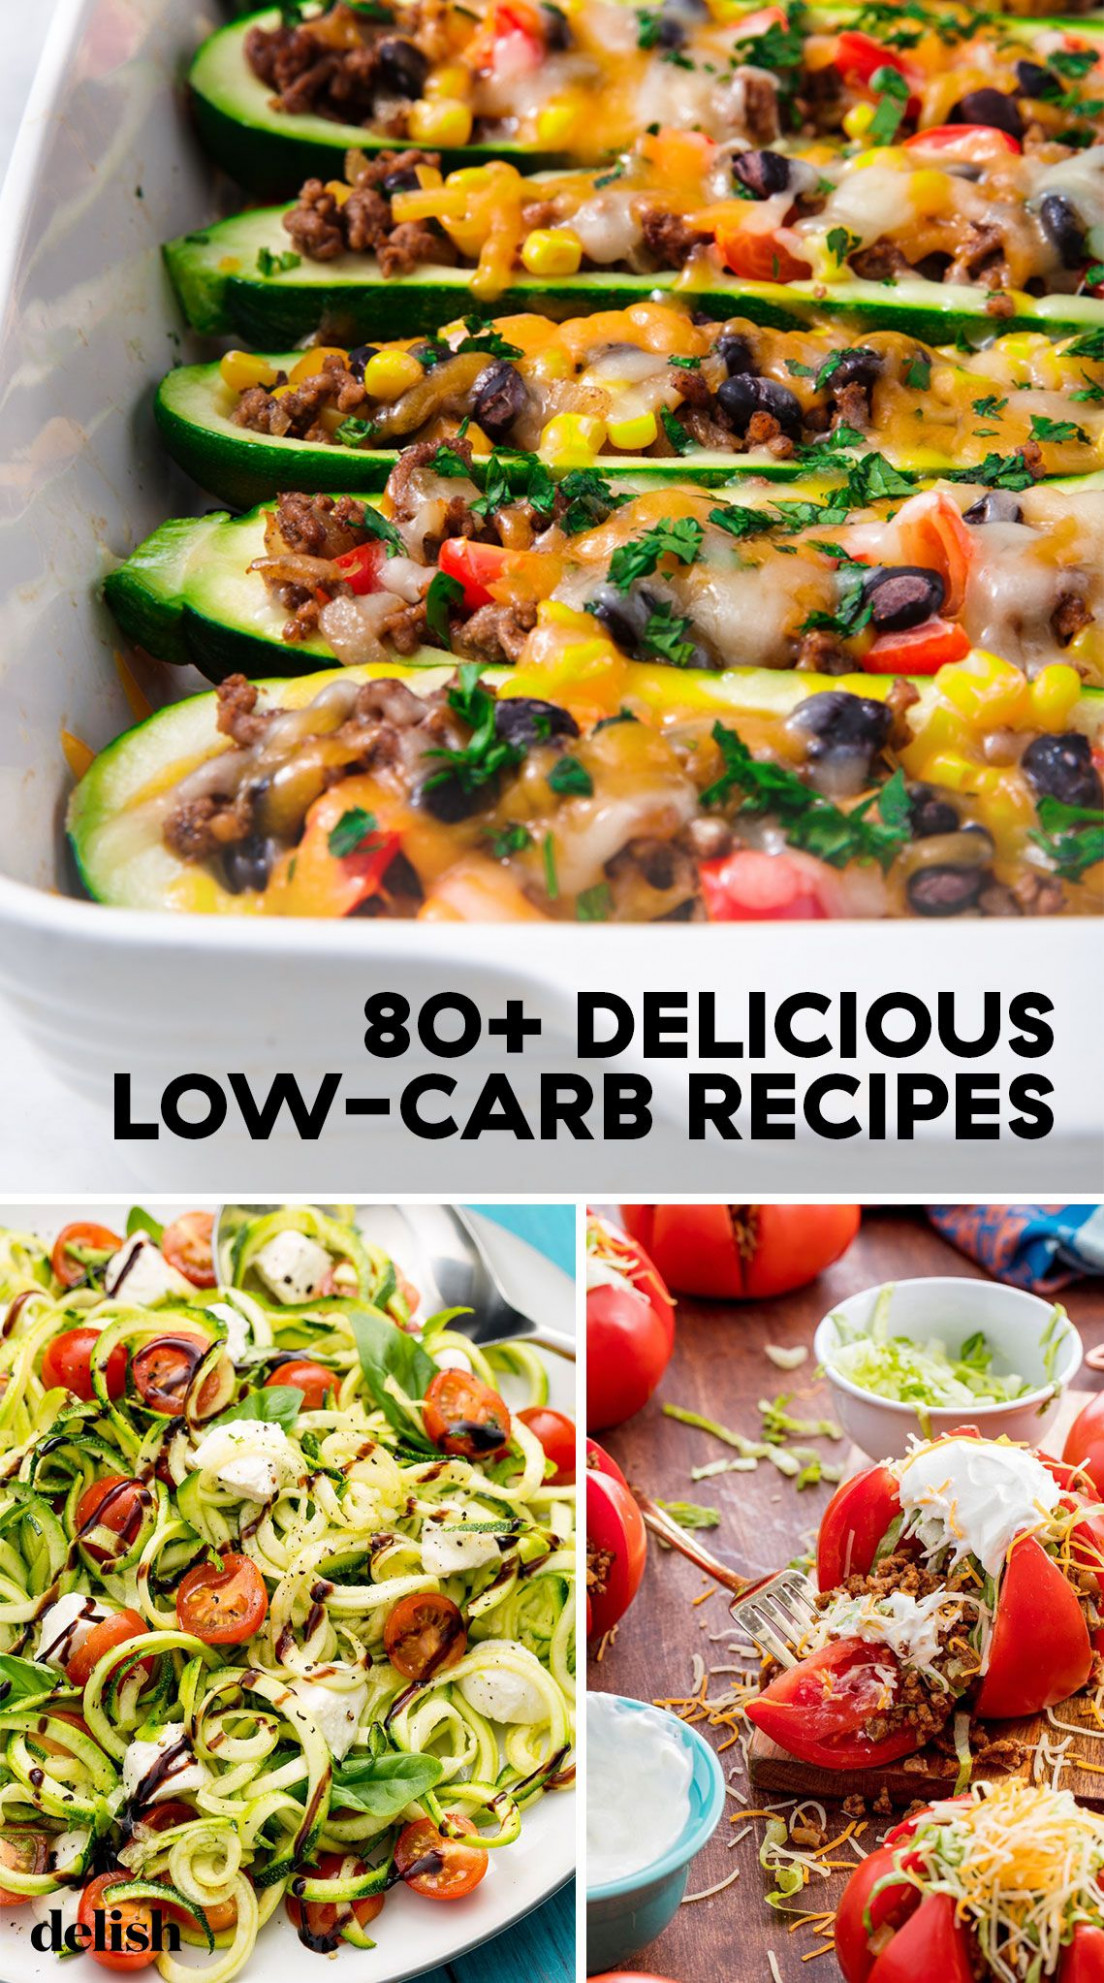 11+ Easy Low Carb Recipes - Best Low Carb Meal Ideas - dinner recipes delish